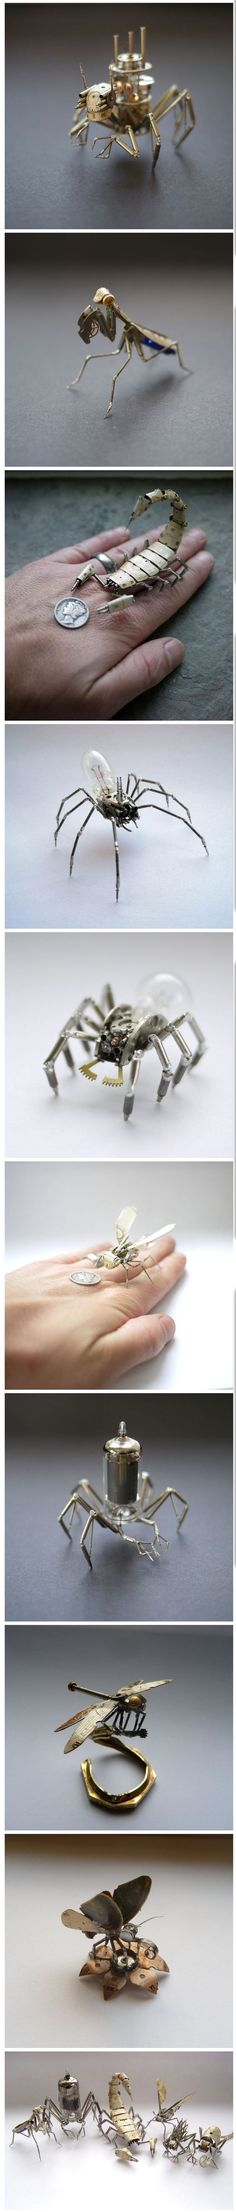 Tiny Mechanical Insects Made of Watch Parts Chicago-based artist Justin Gershenson-Gates, aka A Mechanical Mind, creates tiny steampunk insects by carefully soldering together gears, springs, and Art Steampunk, Steampunk Fashion, Steampunk Watch, Sculpture Metal, Insect Art, Electronic Art, Recycled Art, Dieselpunk, Art Plastique